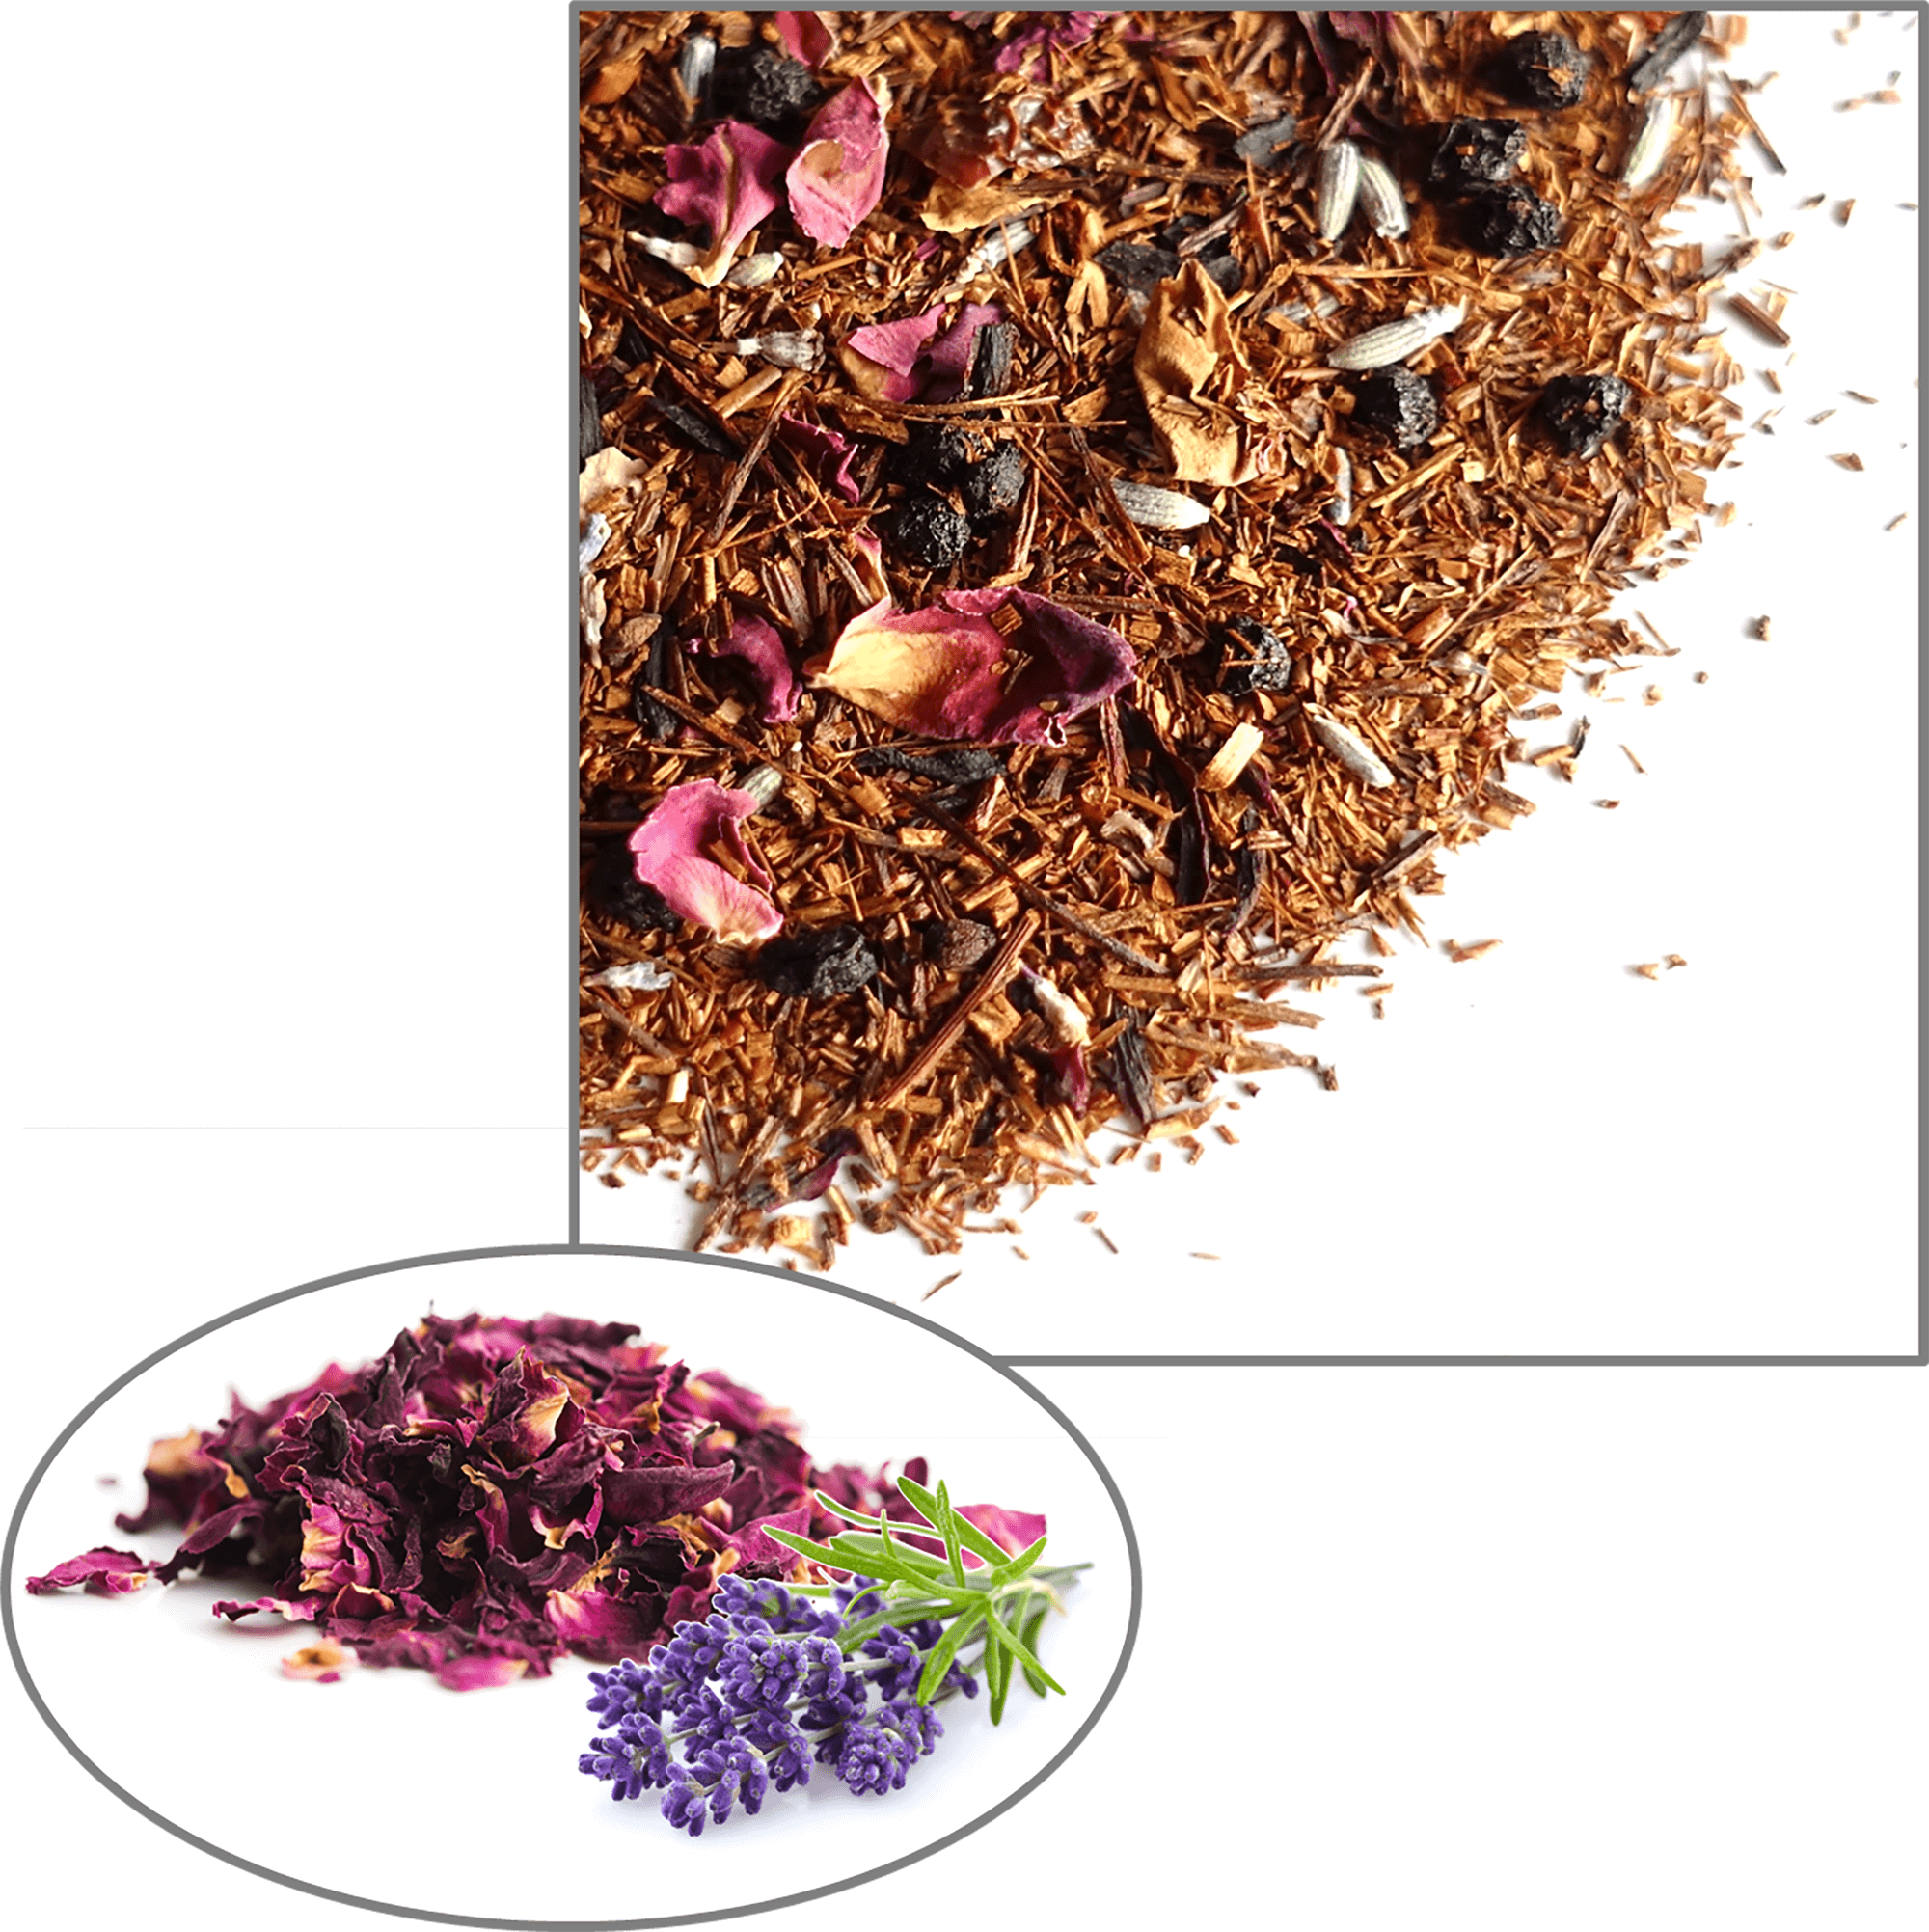 A reddish golden pile of rooibos tea leaves mixed with rose petals that makes up a sample of Cape De Hoop's Blended Rooibos tea.